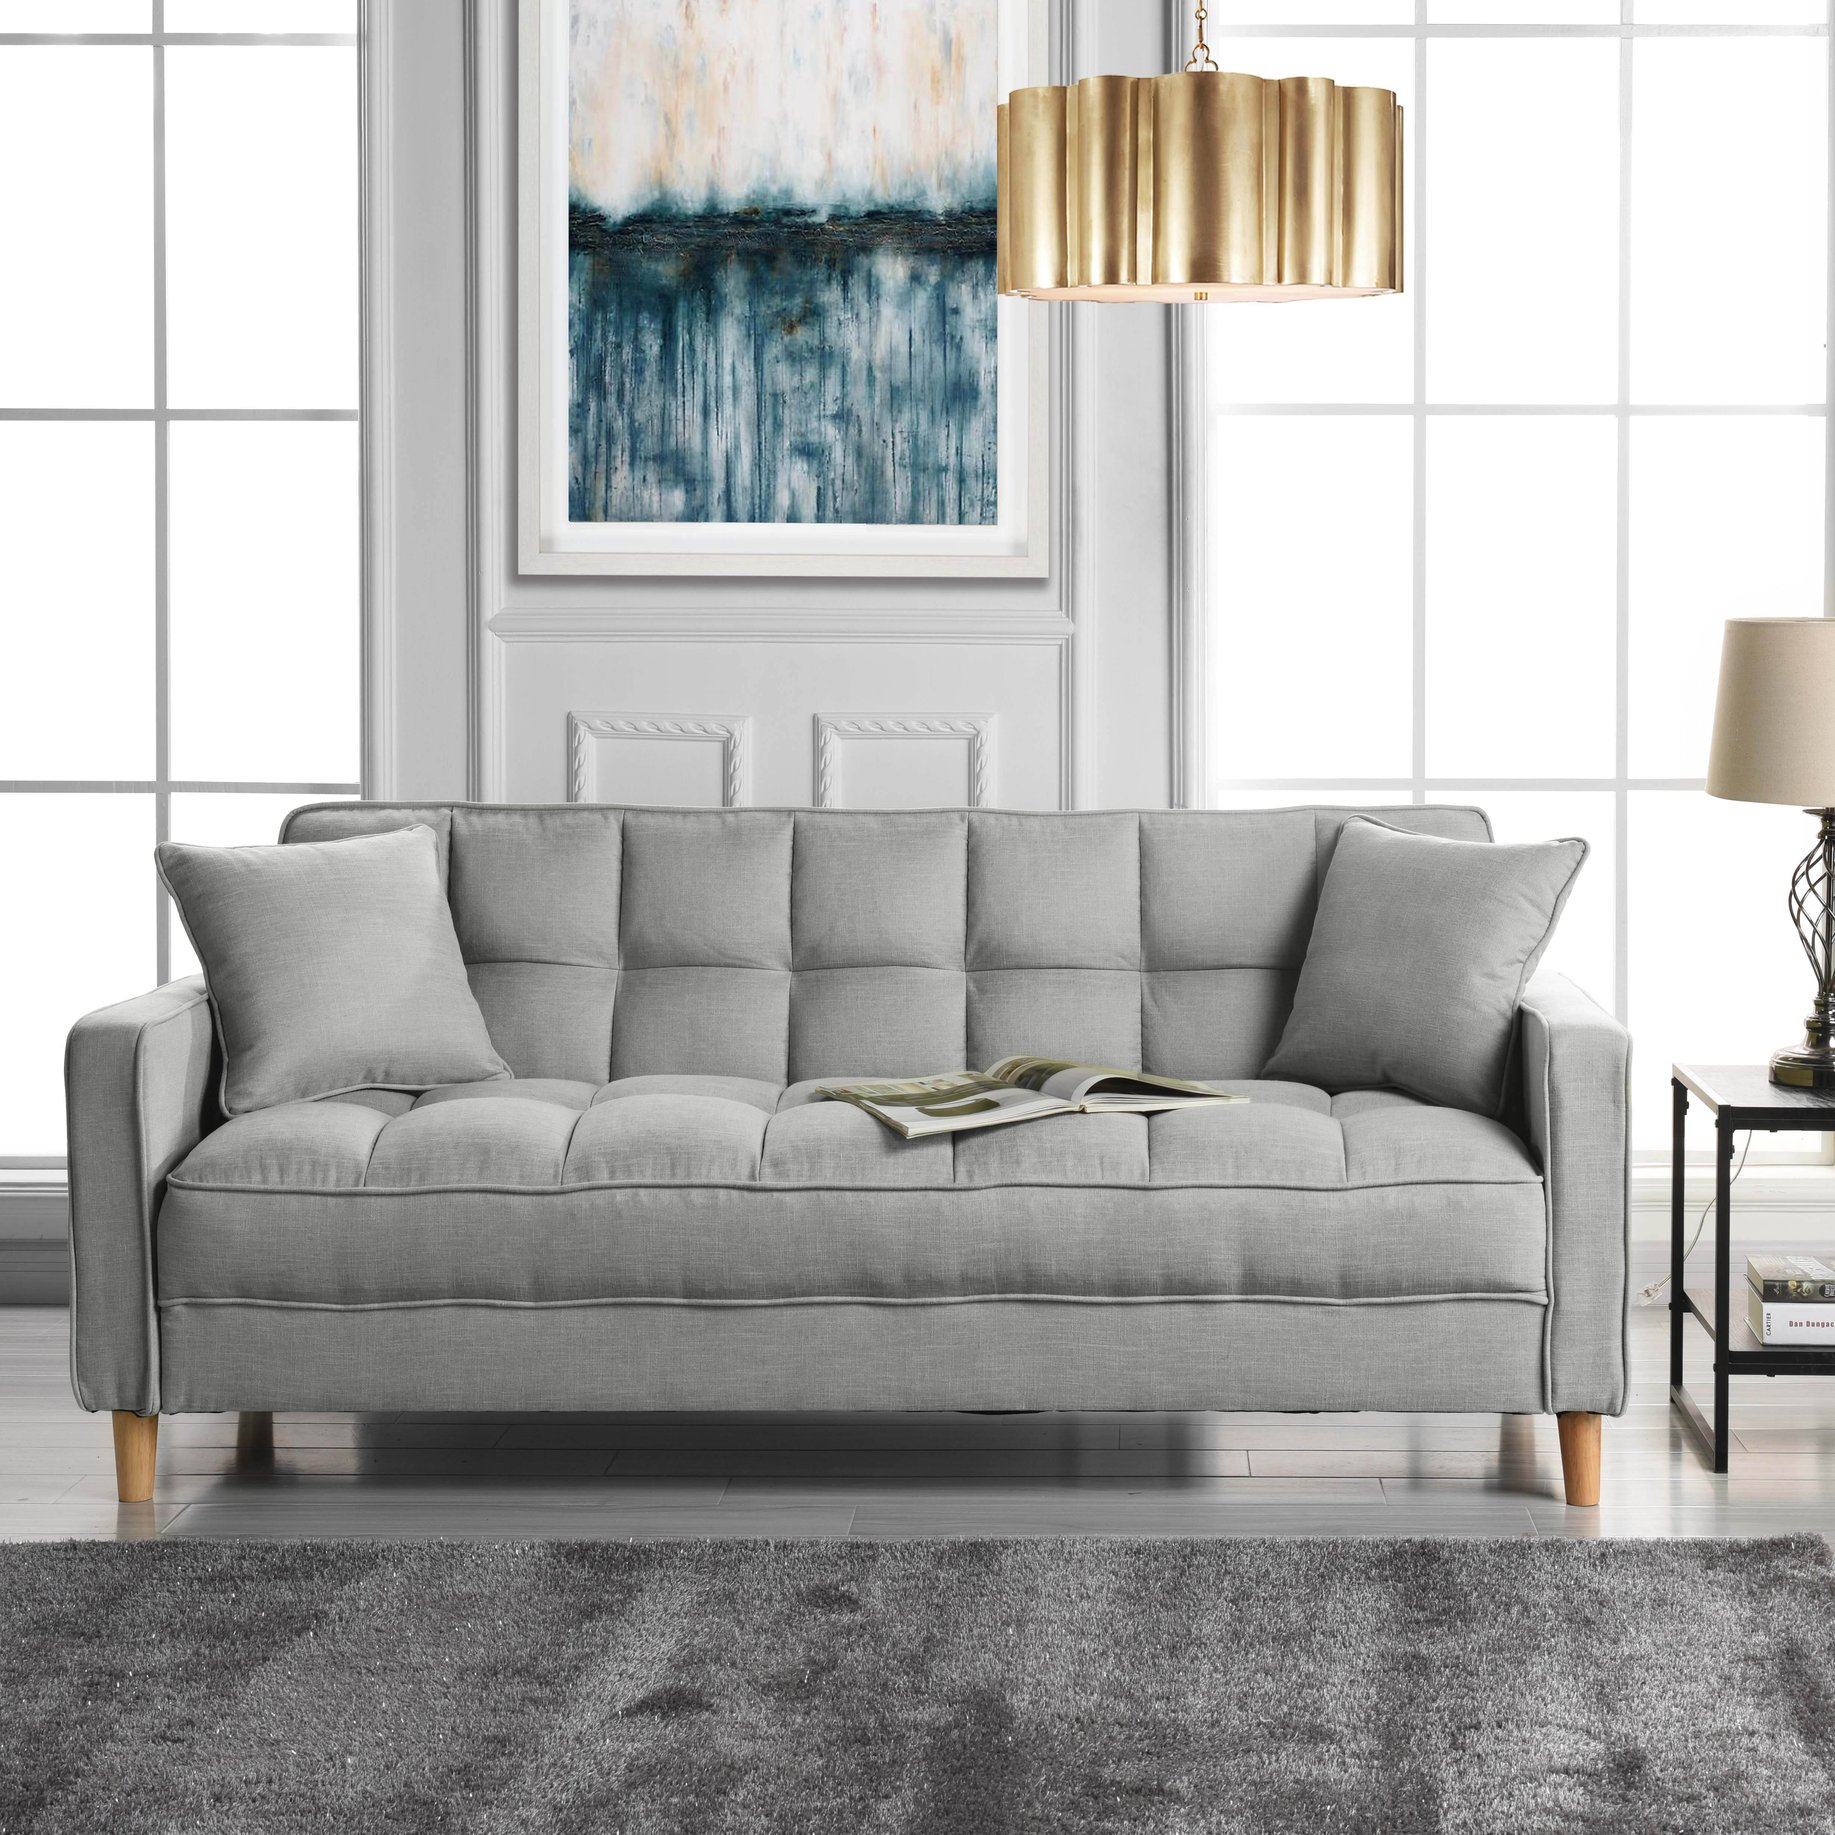 Details about Contemporary Fabric Sofa with Tufted Detail and Natural  Wooden Legs